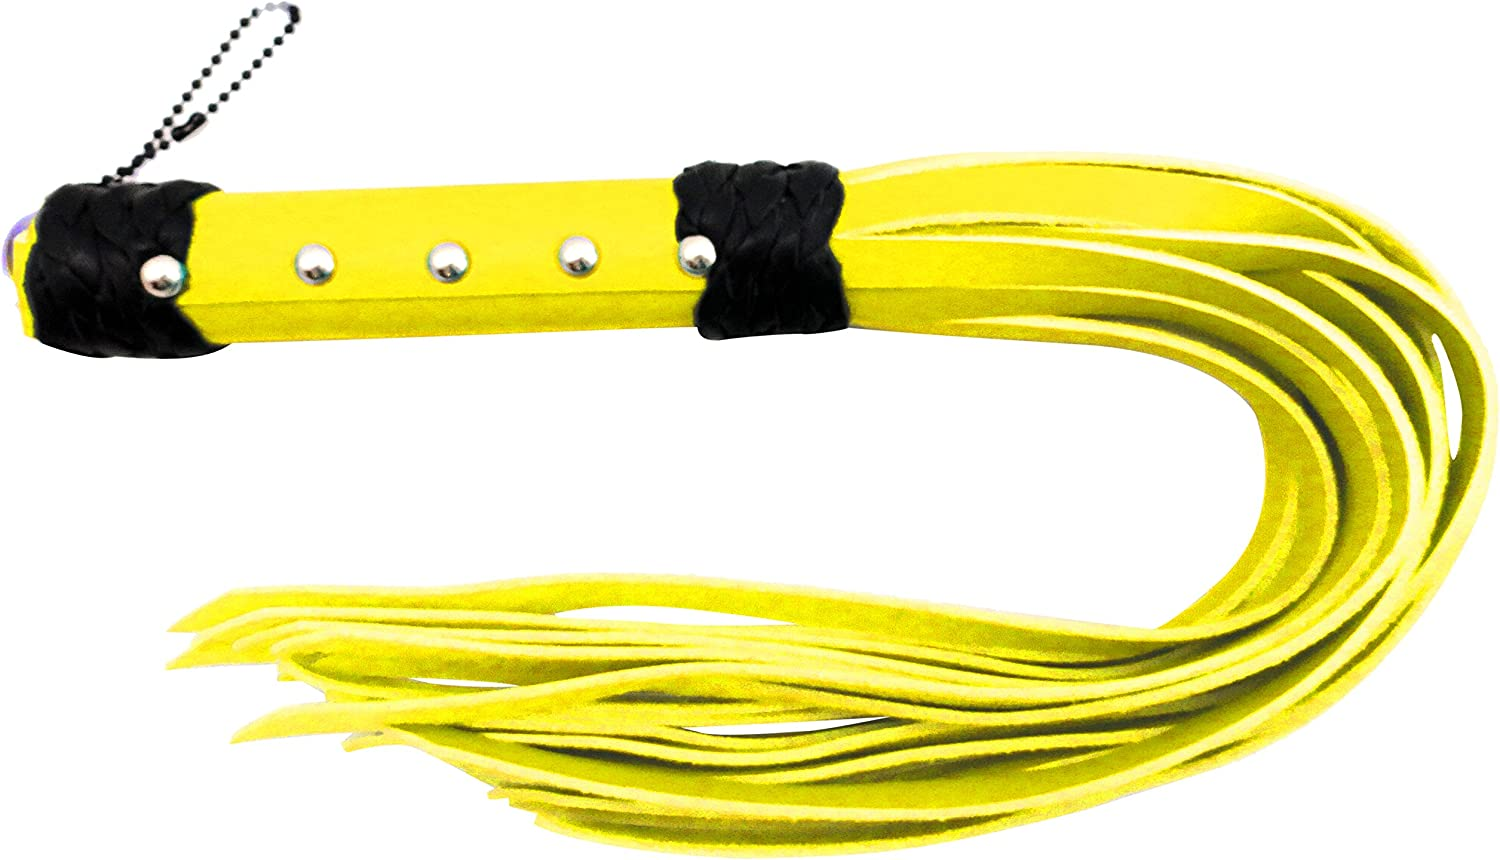 Ka-pow Color Whip Strap Leather Yellow Inch Black NEW before selling ☆ 20 OFFicial store and